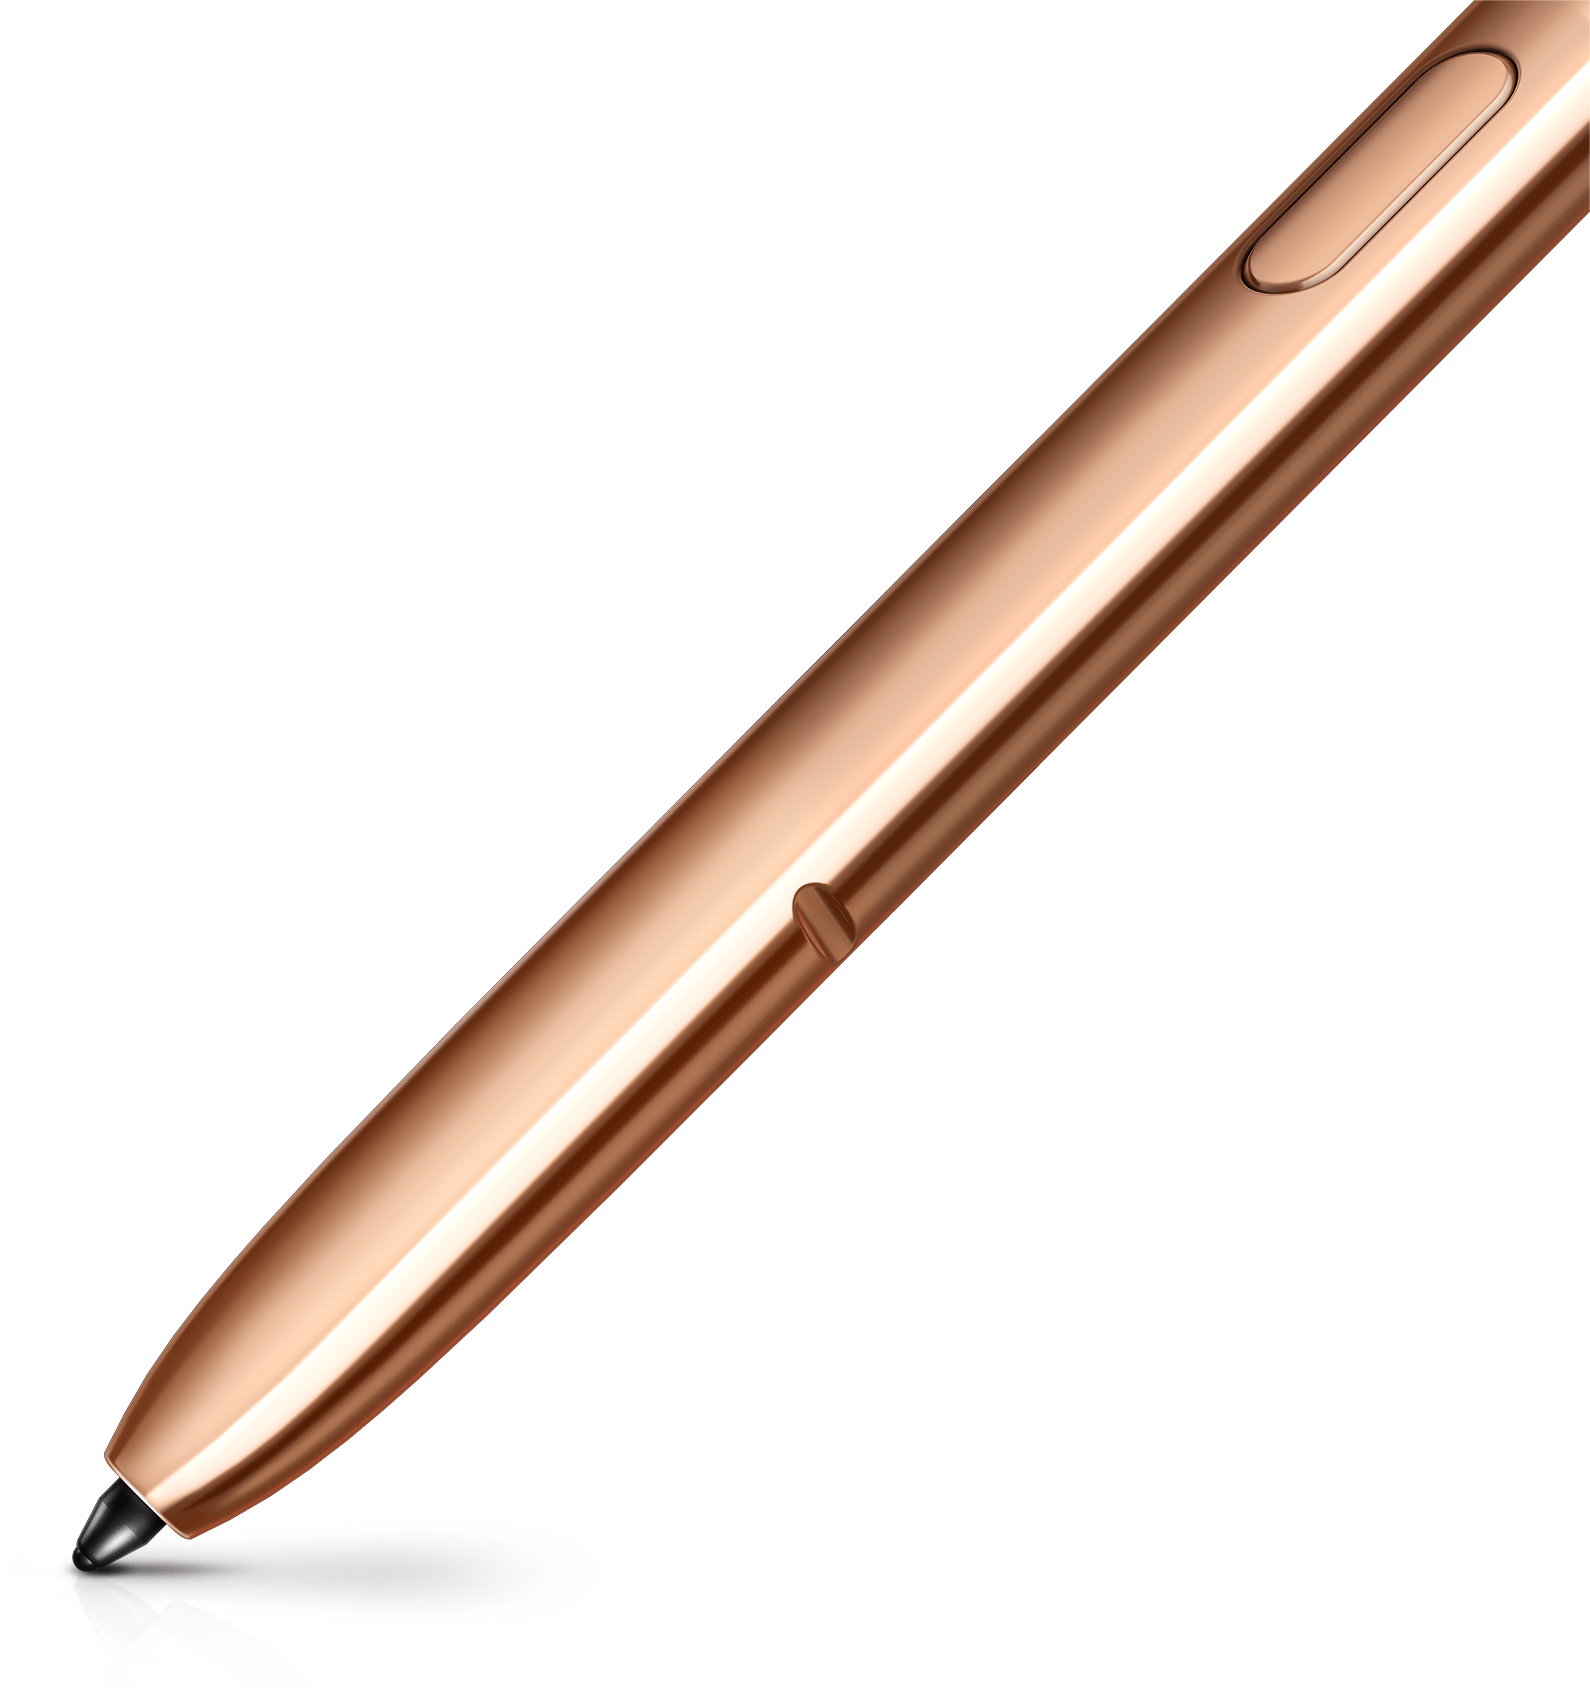 Galaxy Note20 in Mystic Bronze S Pen